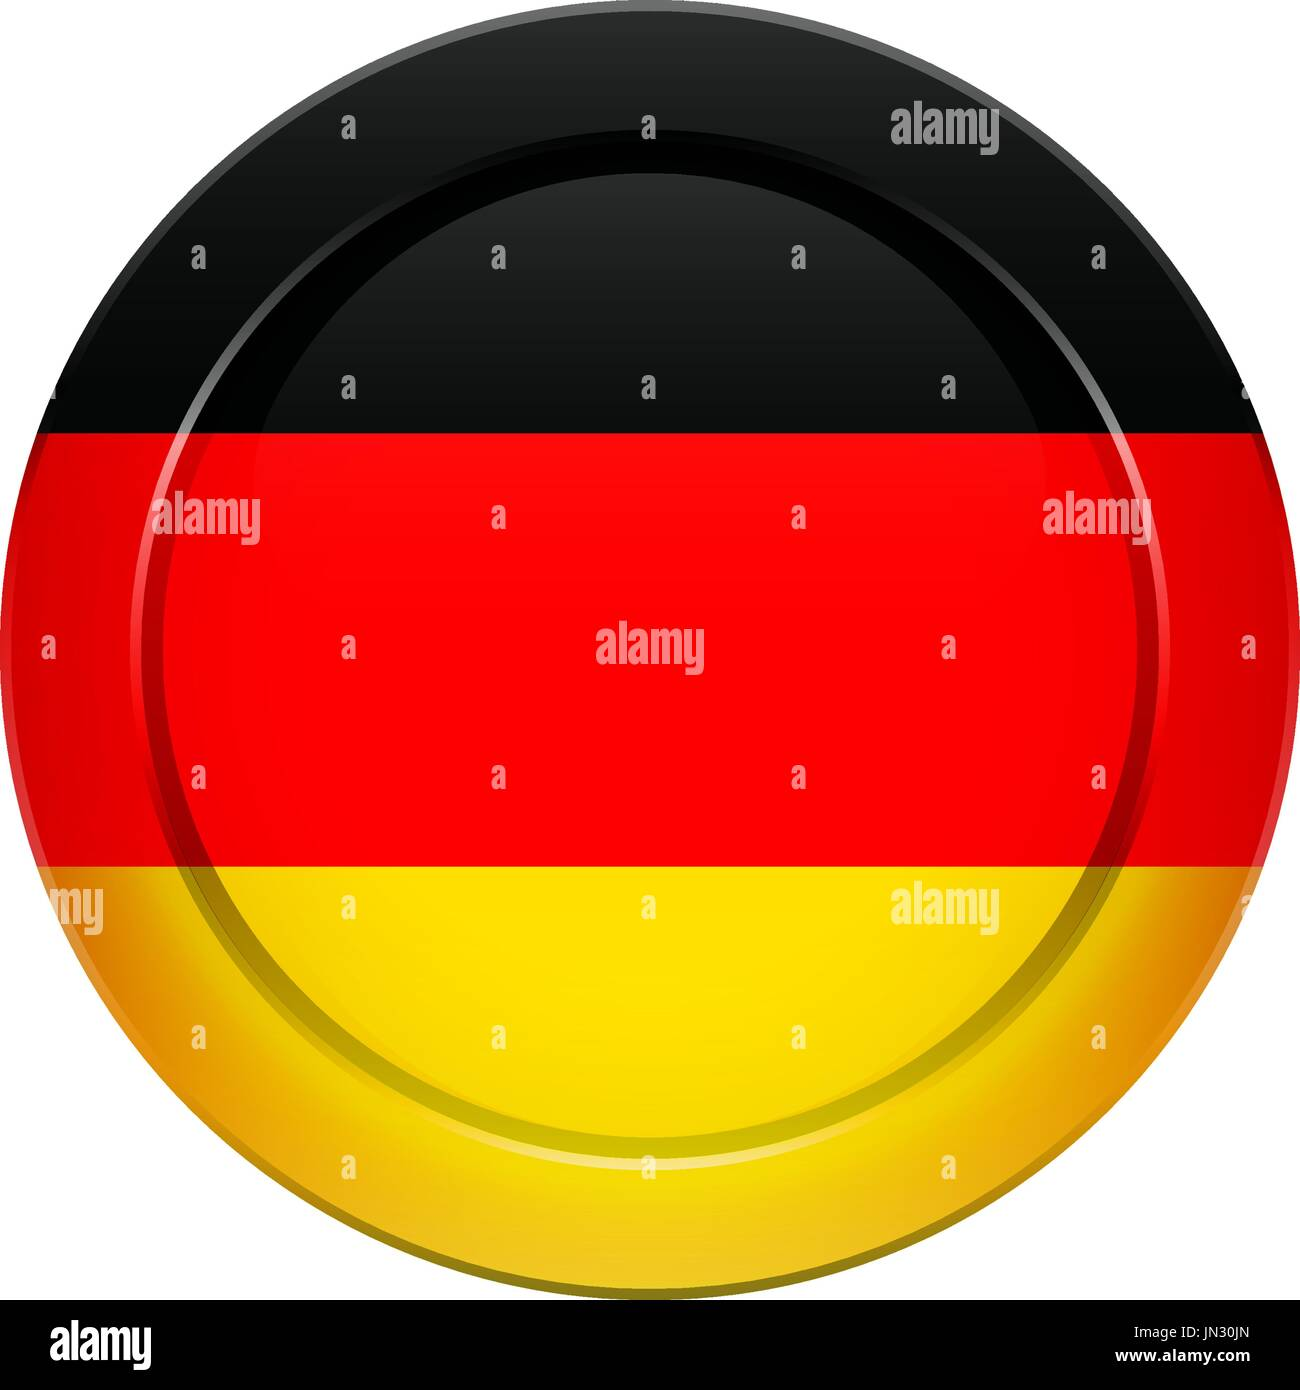 Flag button design. German flag on the round button. Isolated template for your designs. Vector illustration. - Stock Vector